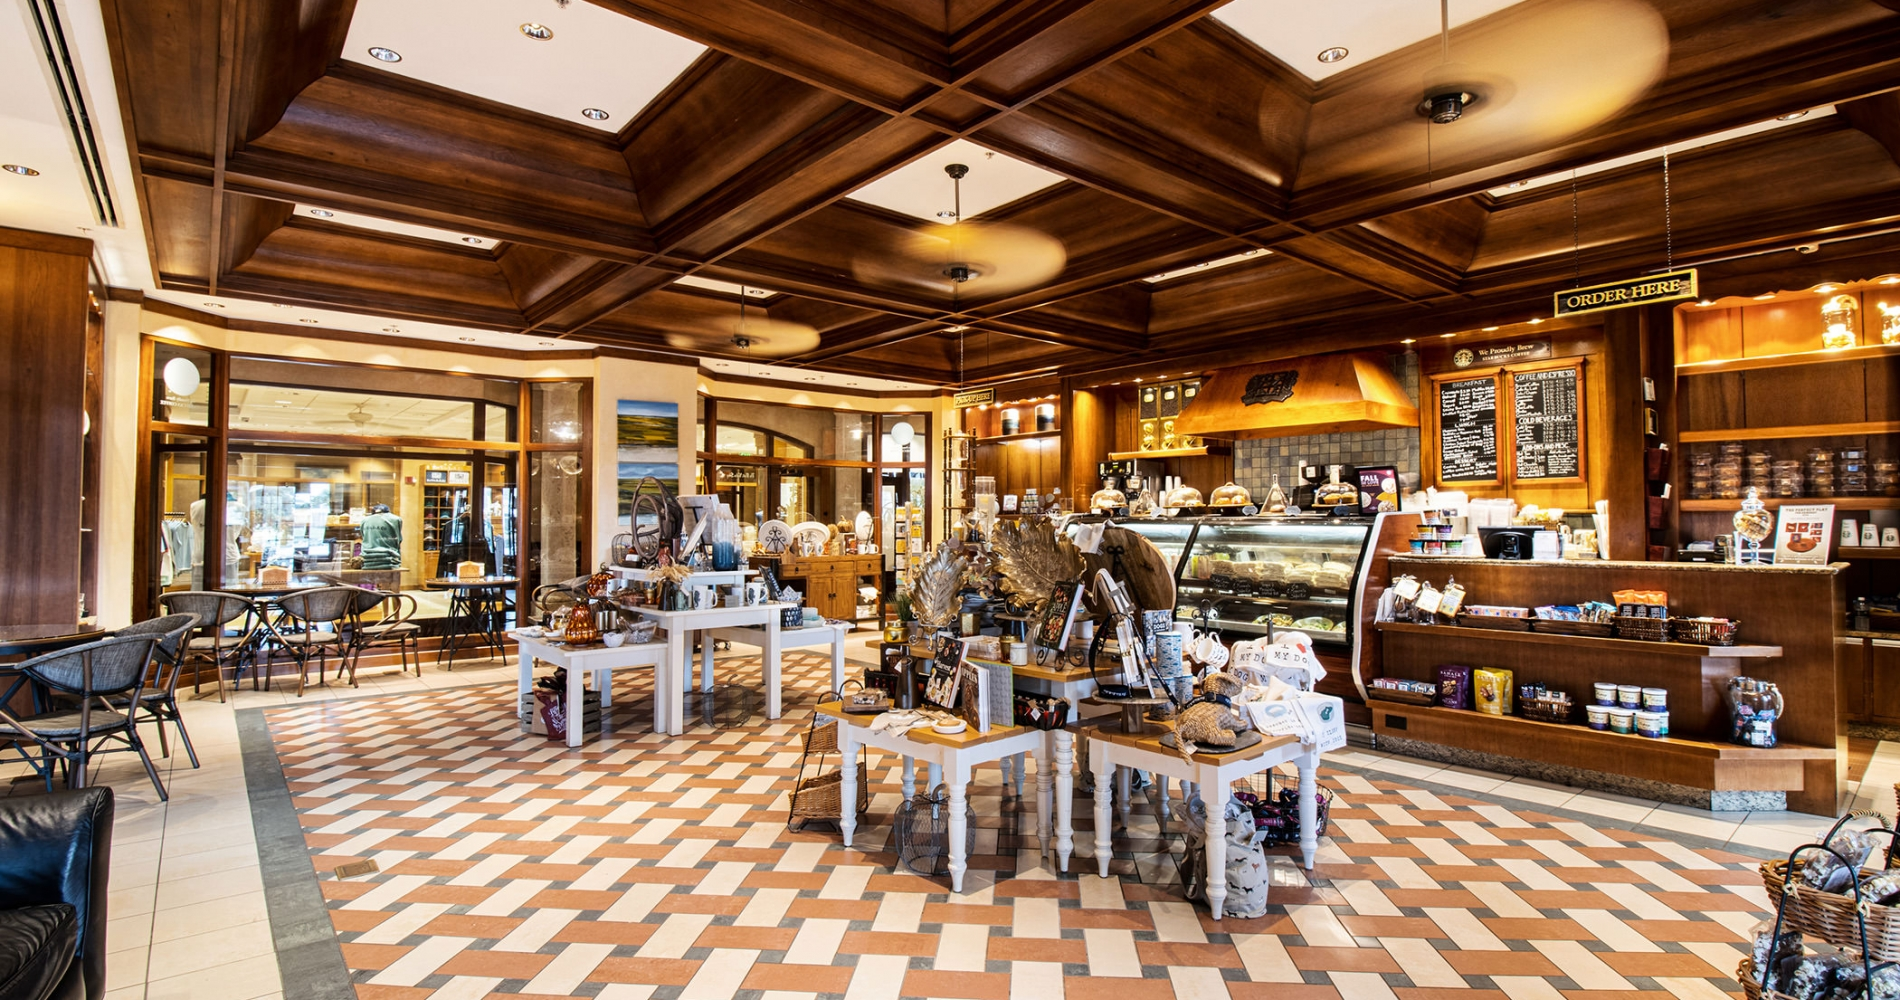 View of the inside of the Gourmet Shop at the Inn